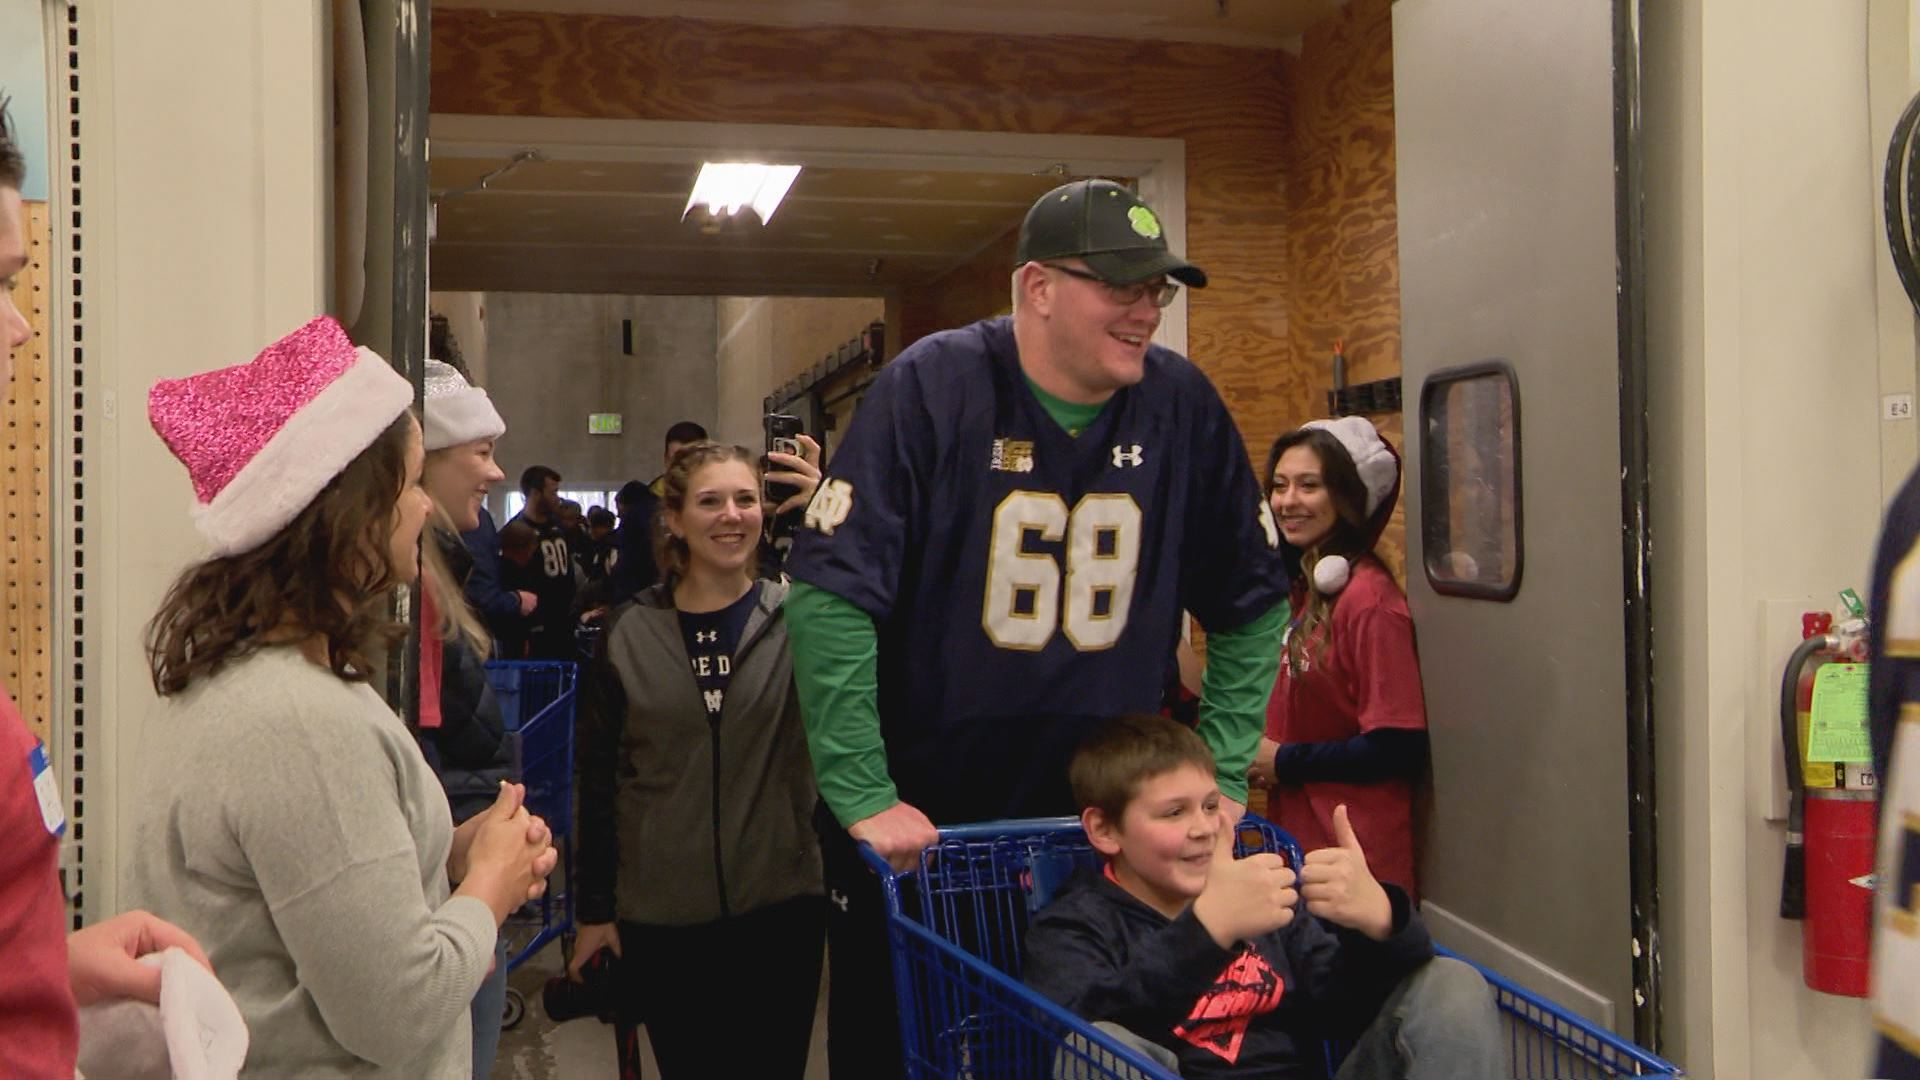 Mike McGlinchey pushes a local boy in a shopping cart as they enter the Meijer shopping spree // WSBT 22 Photo<p></p>